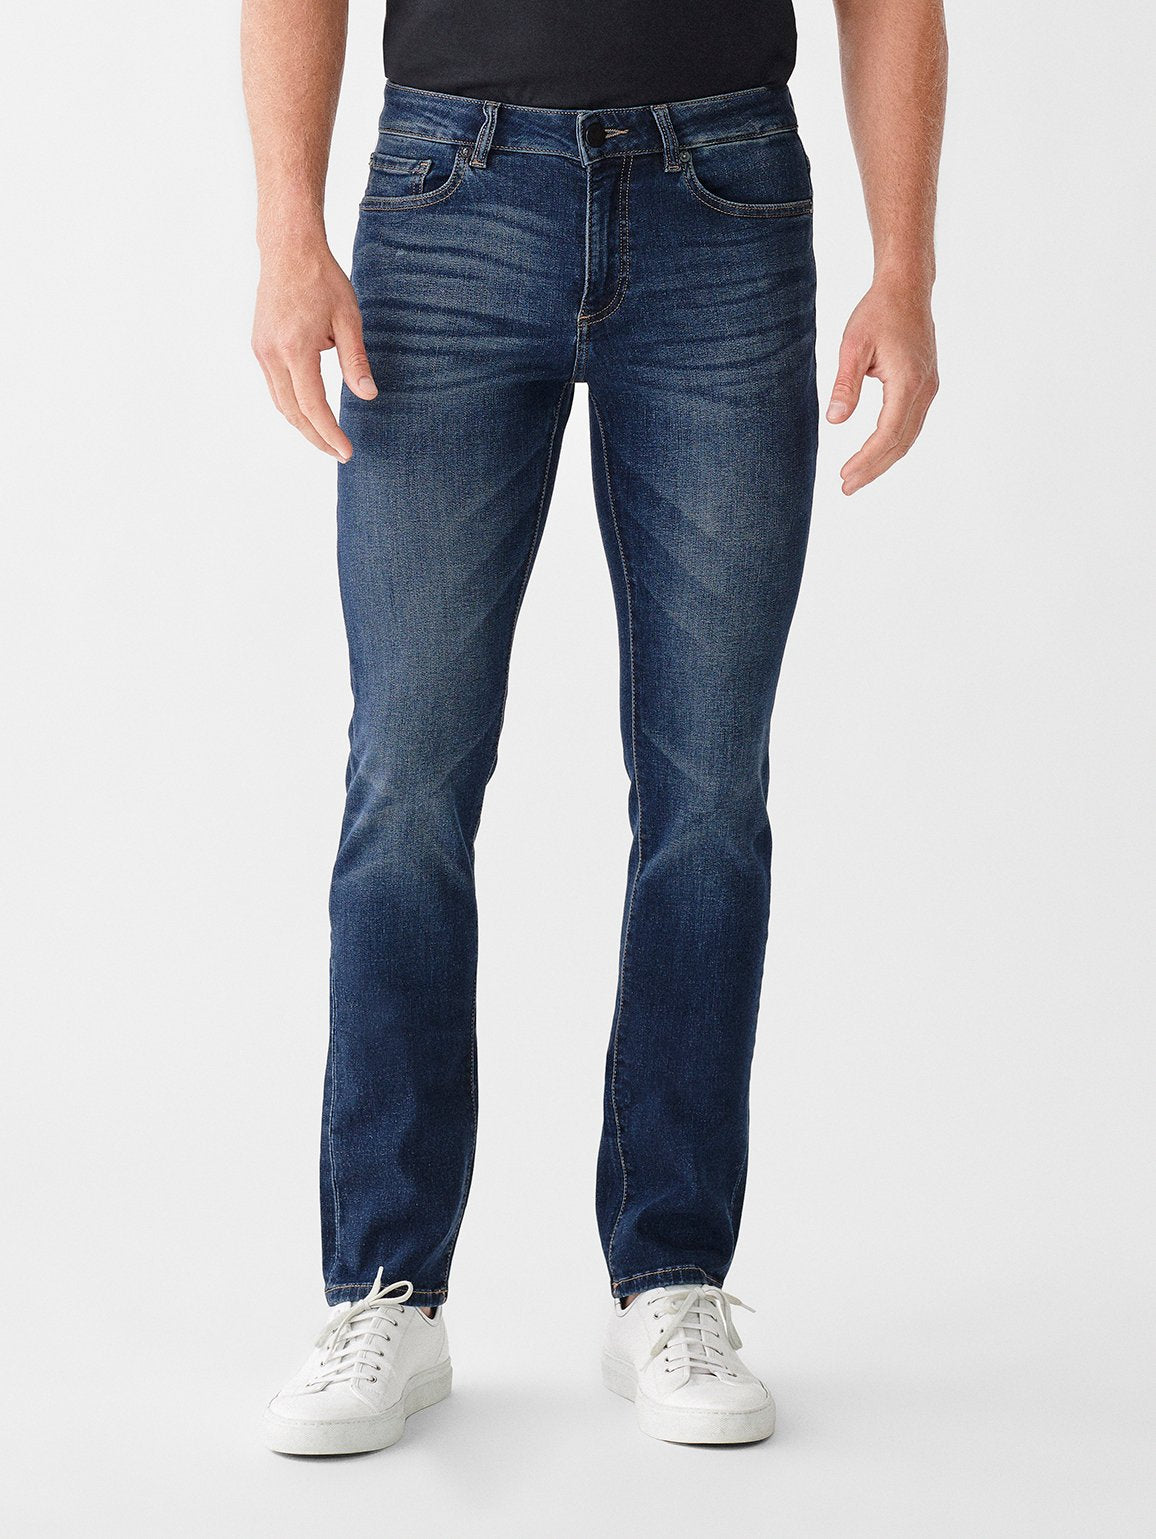 DL1961 Nick Slim Fit Jeans In Weston 10682-WESTON